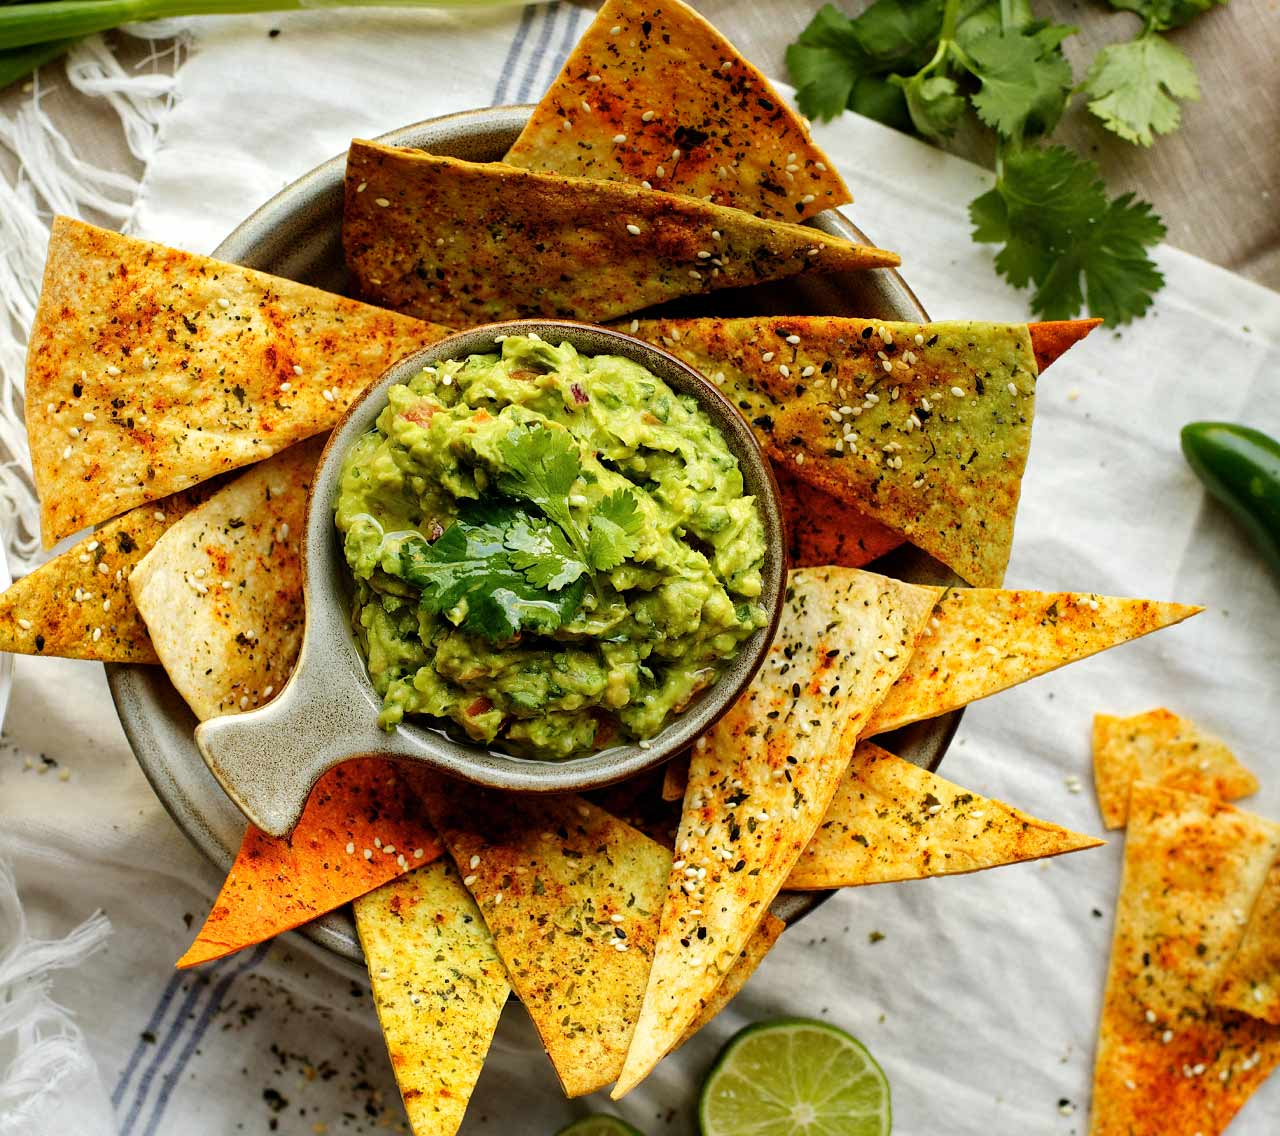 Hearty Guacamole with Oven-Baked Chips